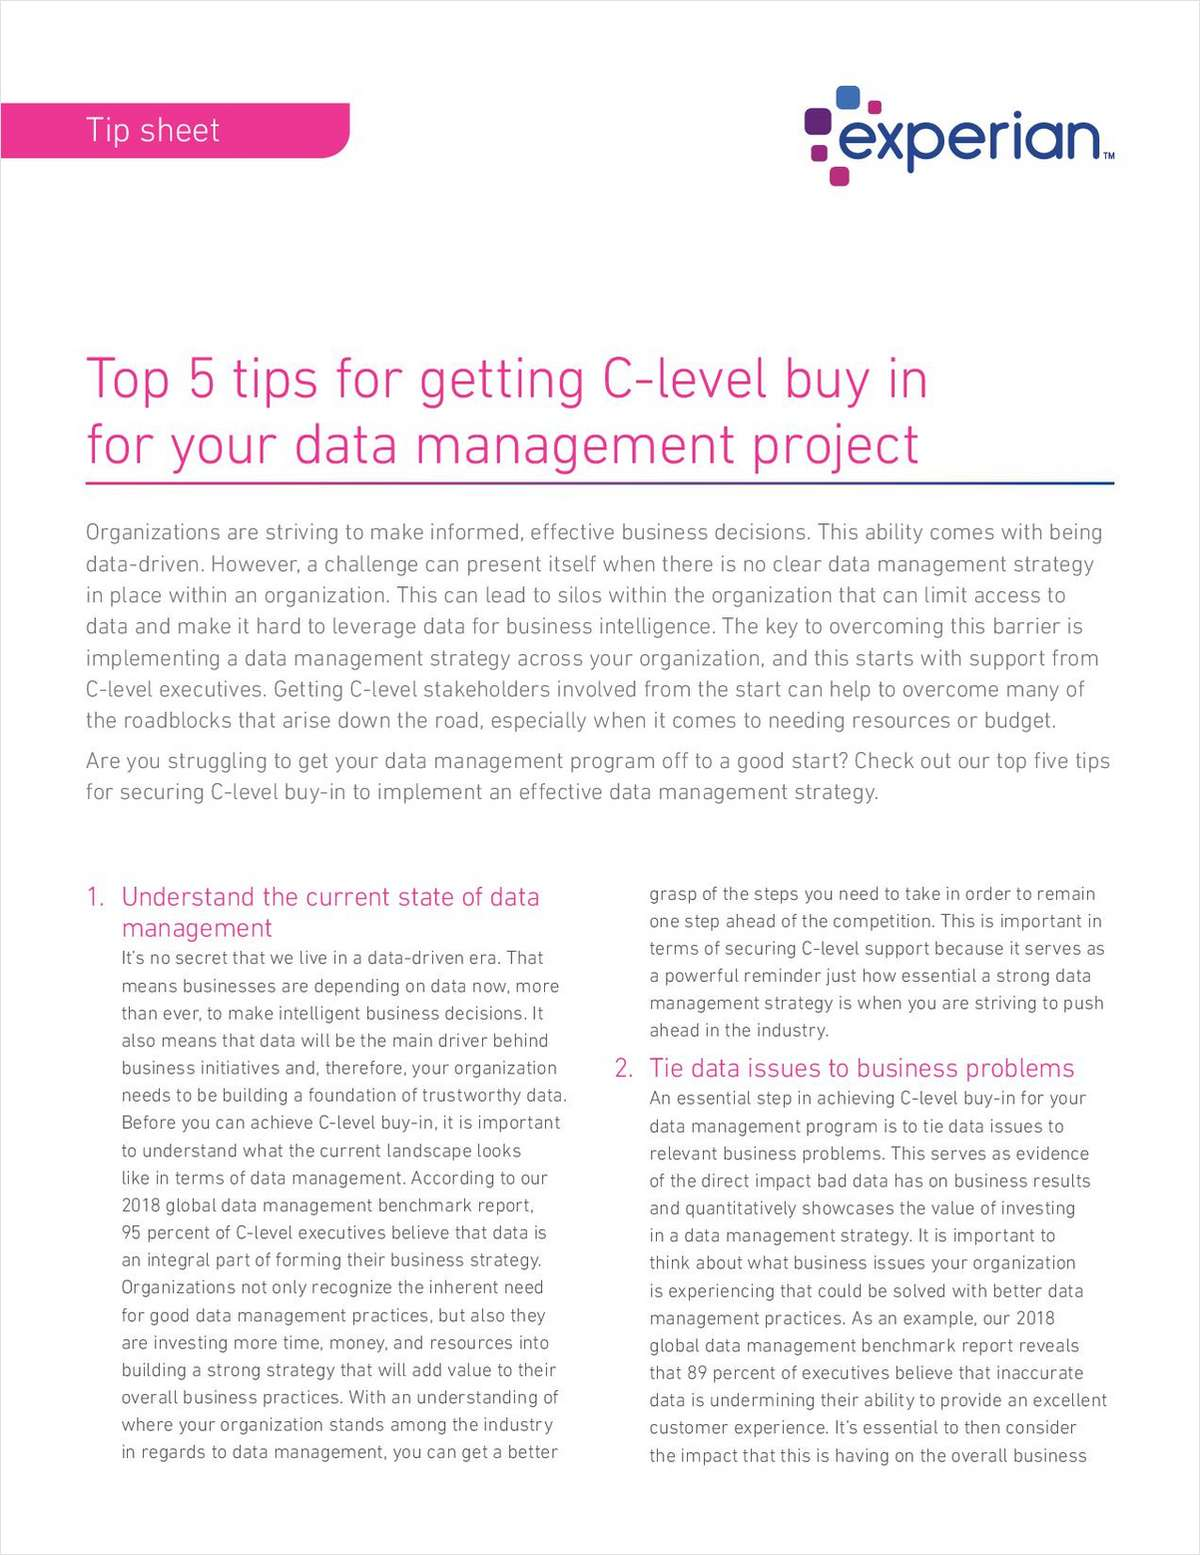 Top 5 tips for getting C-level buy in for your data management